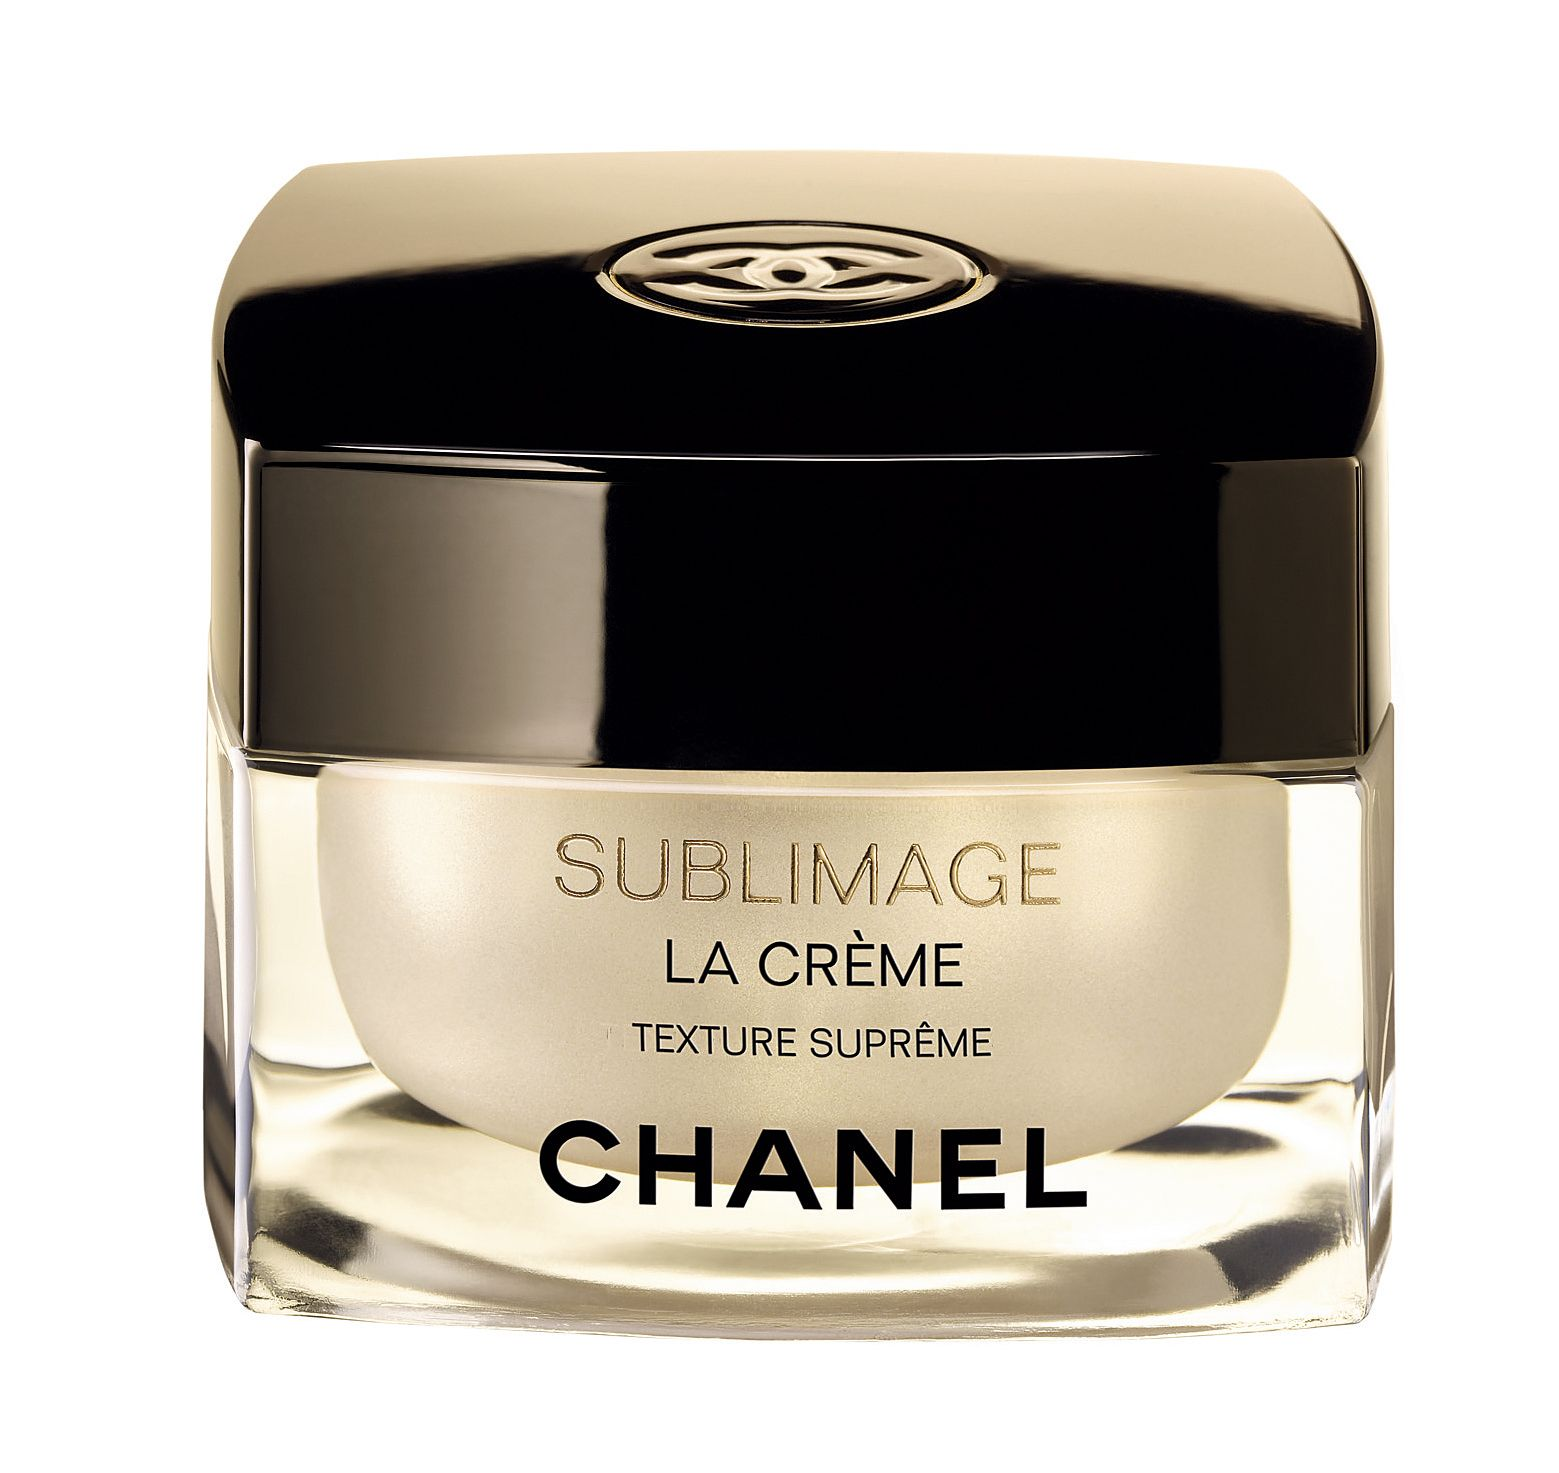 Top 5 Most Expensive Face Creams In 2020 Pouted Com Chanel Sublimage Chanel Sublimage La Creme Face Cream